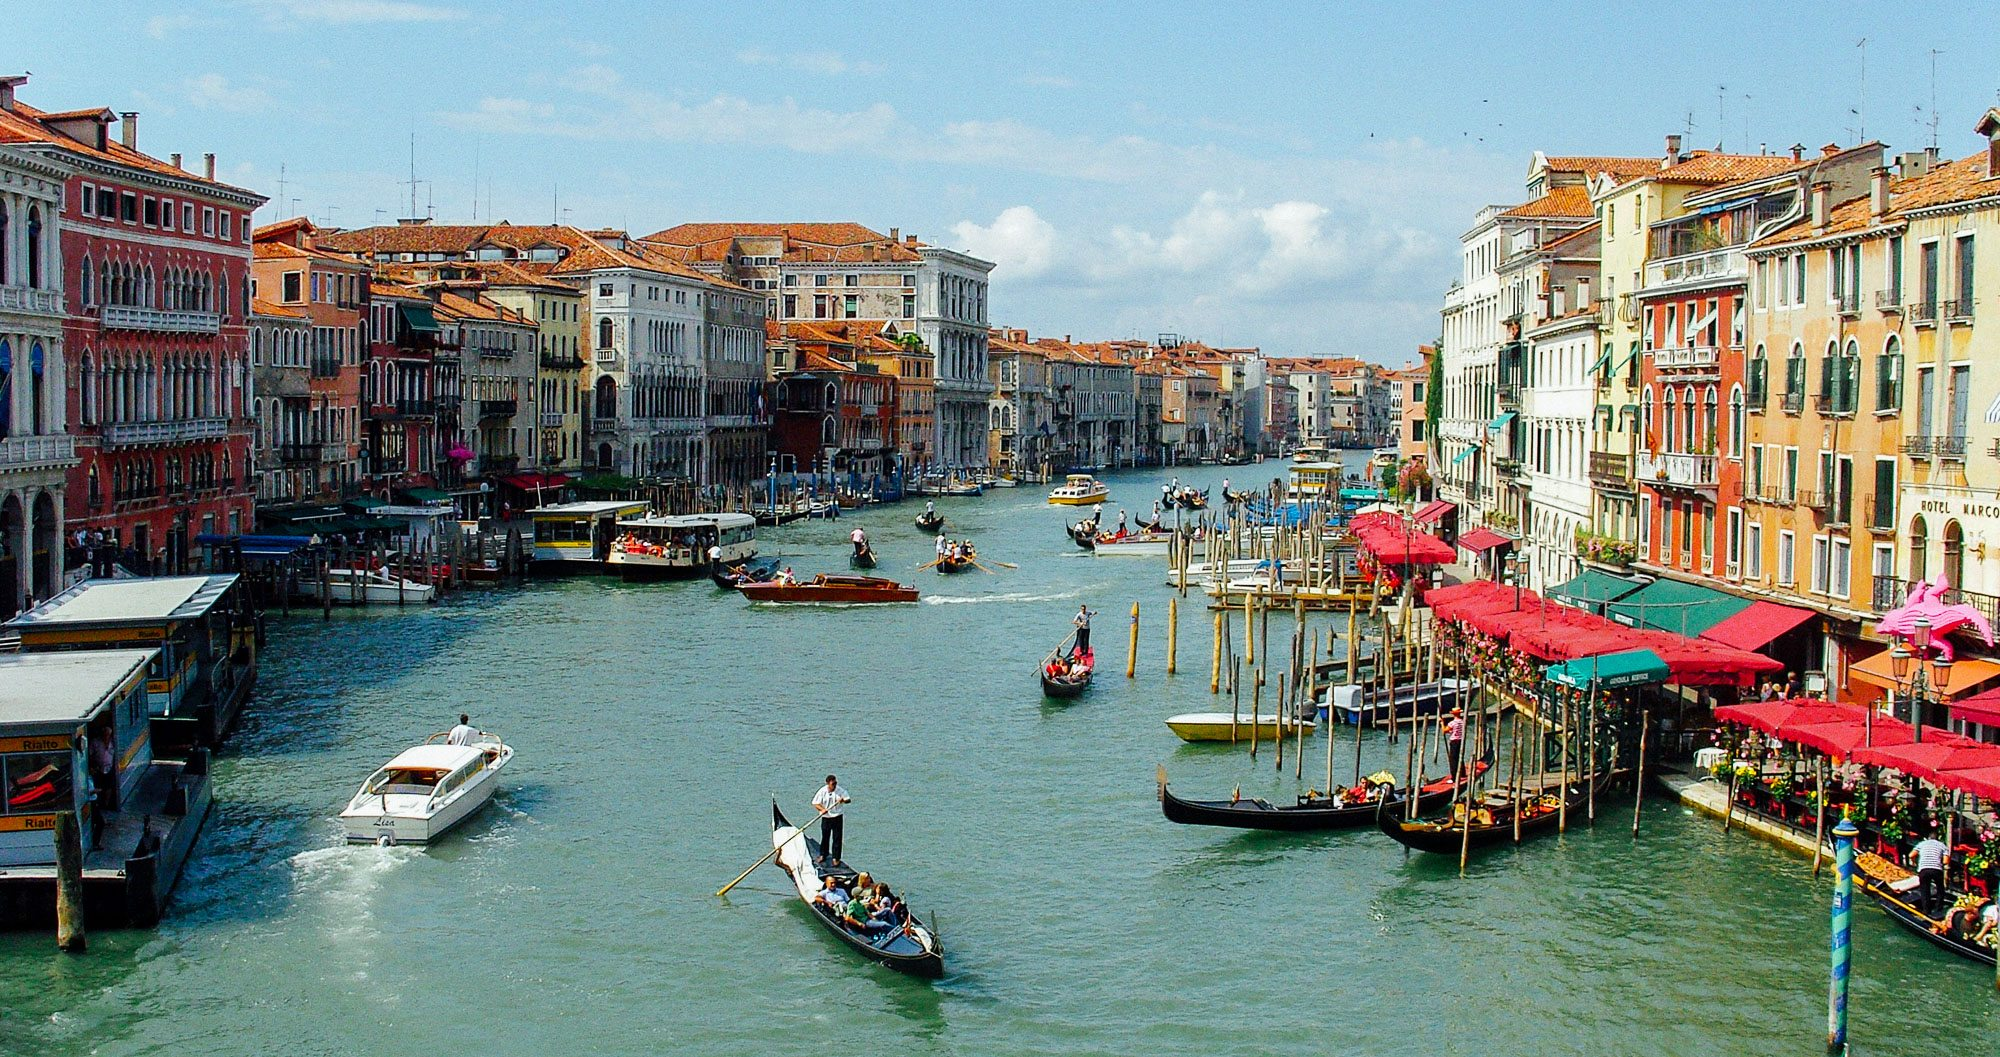 Teams on their sports tour unwind on a recreational day by taking a gondala ride through Venice